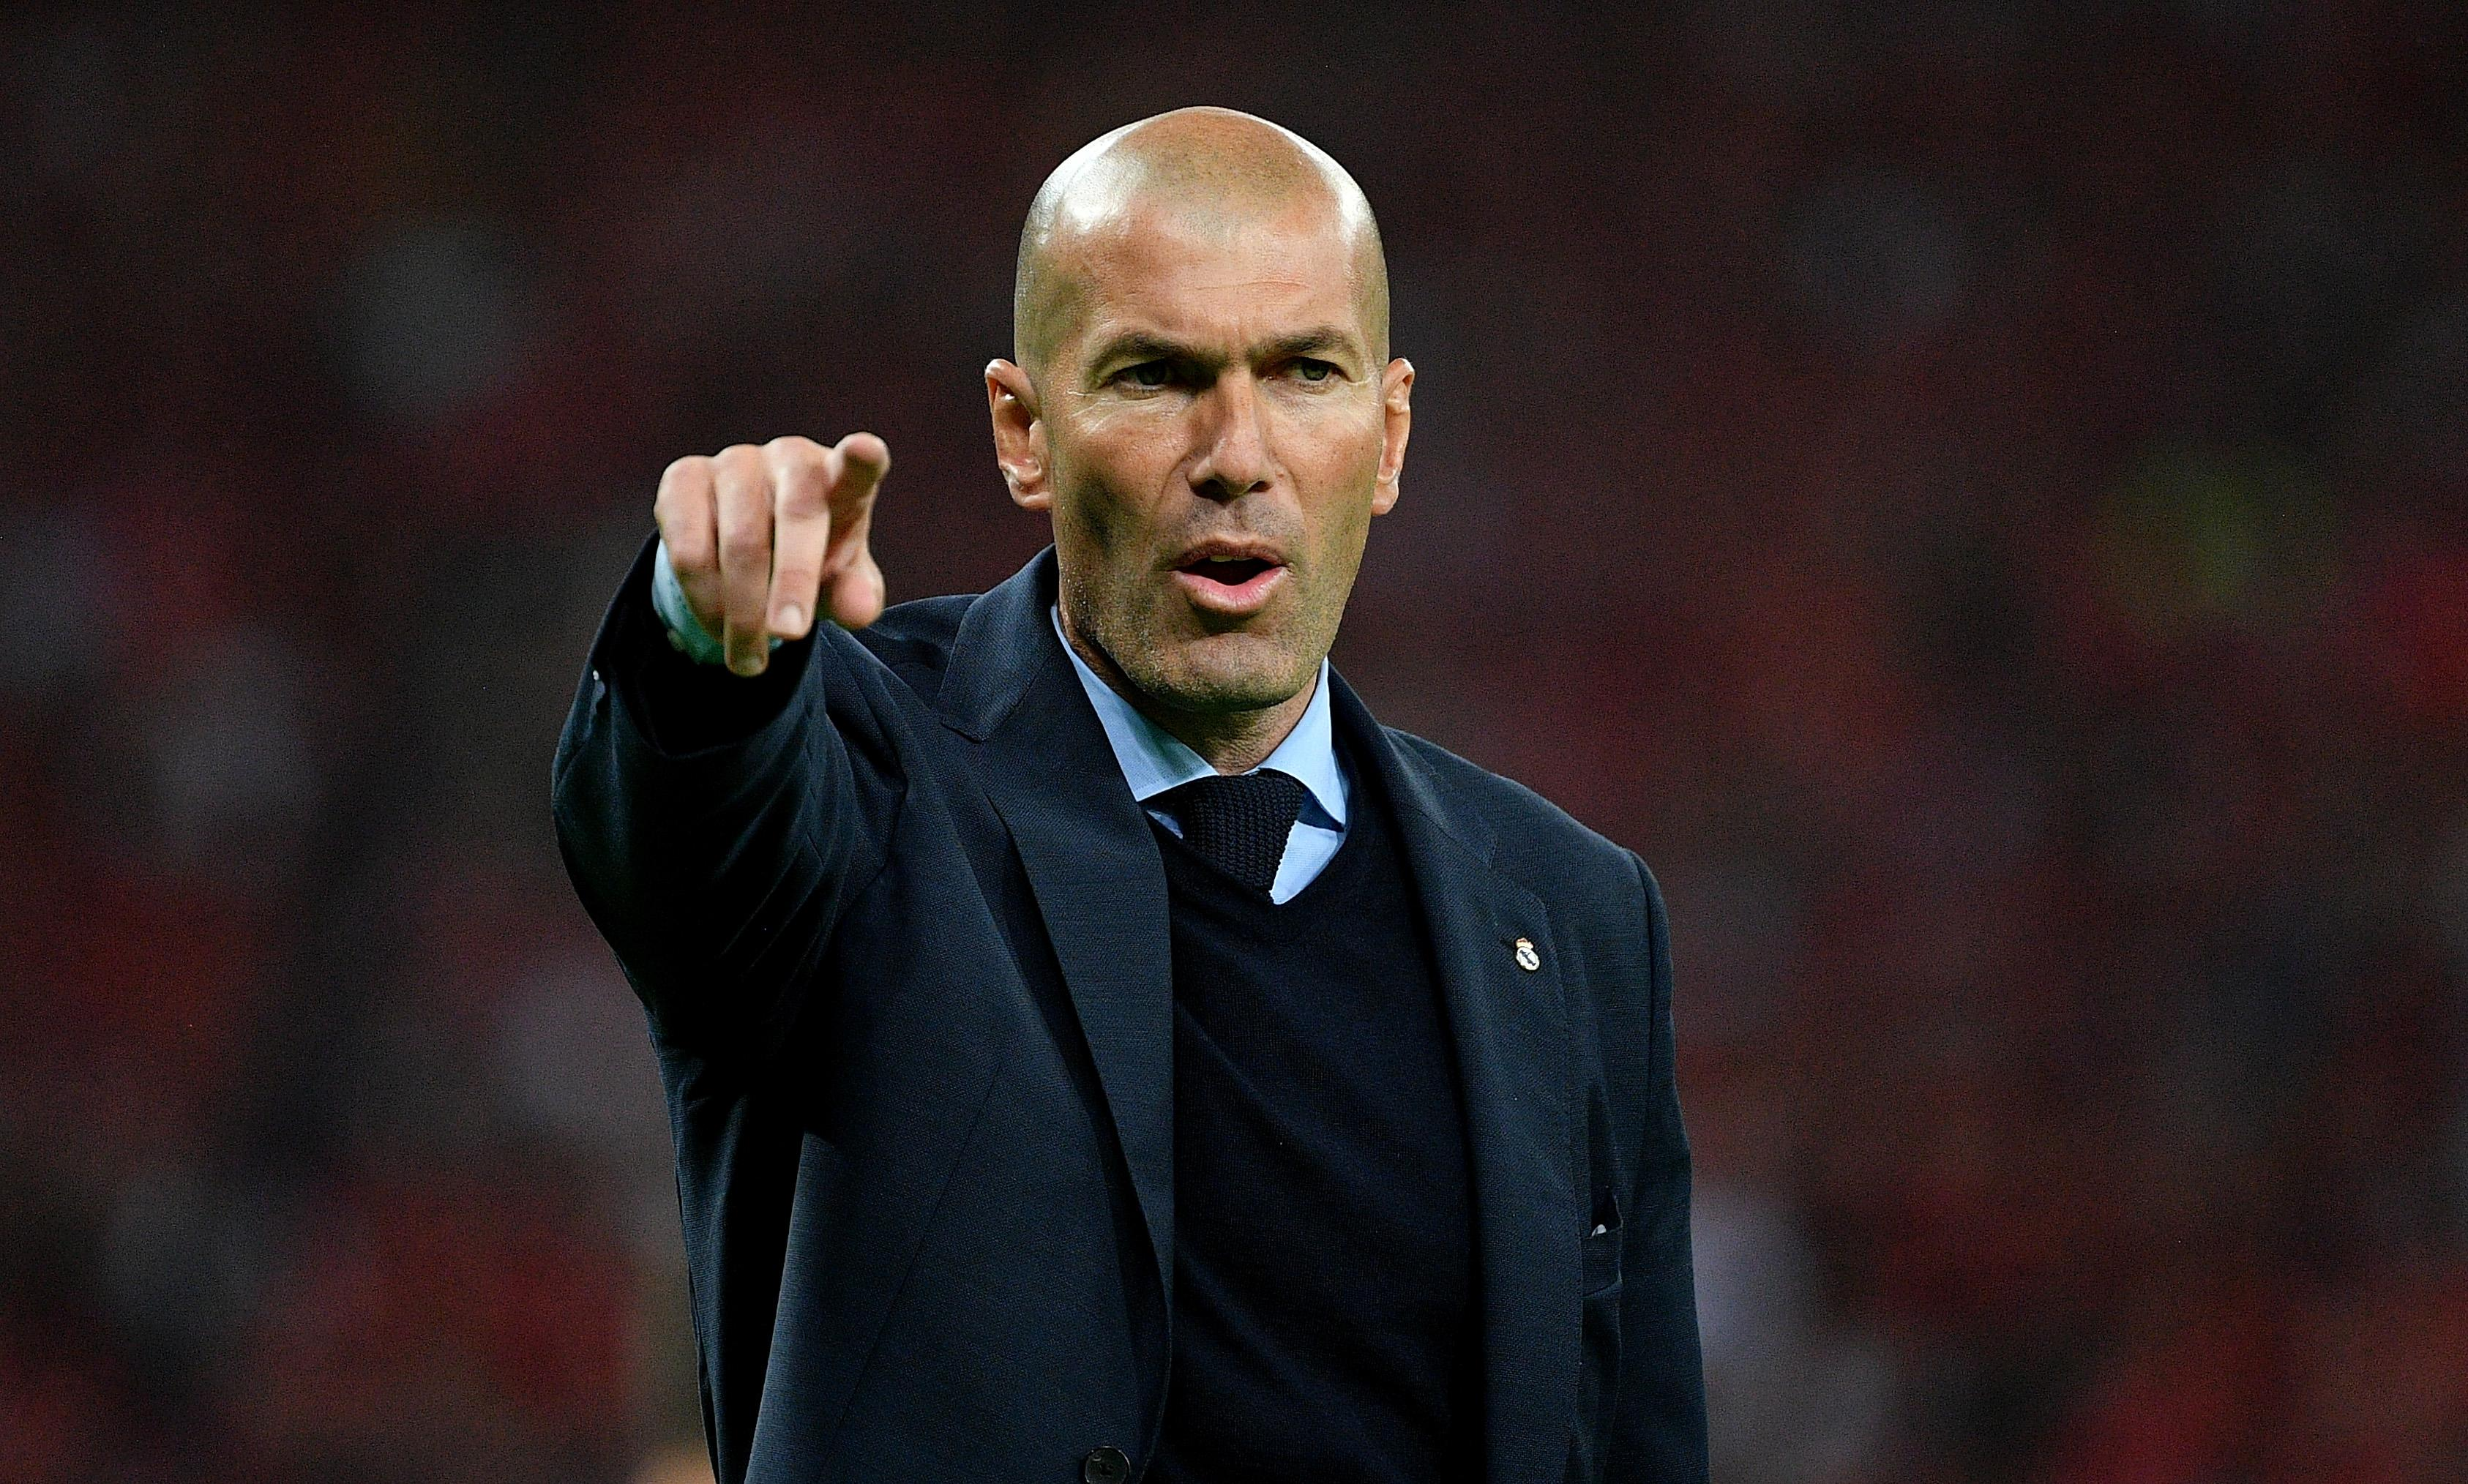 Zinedine Zidane is ready to make a return to management